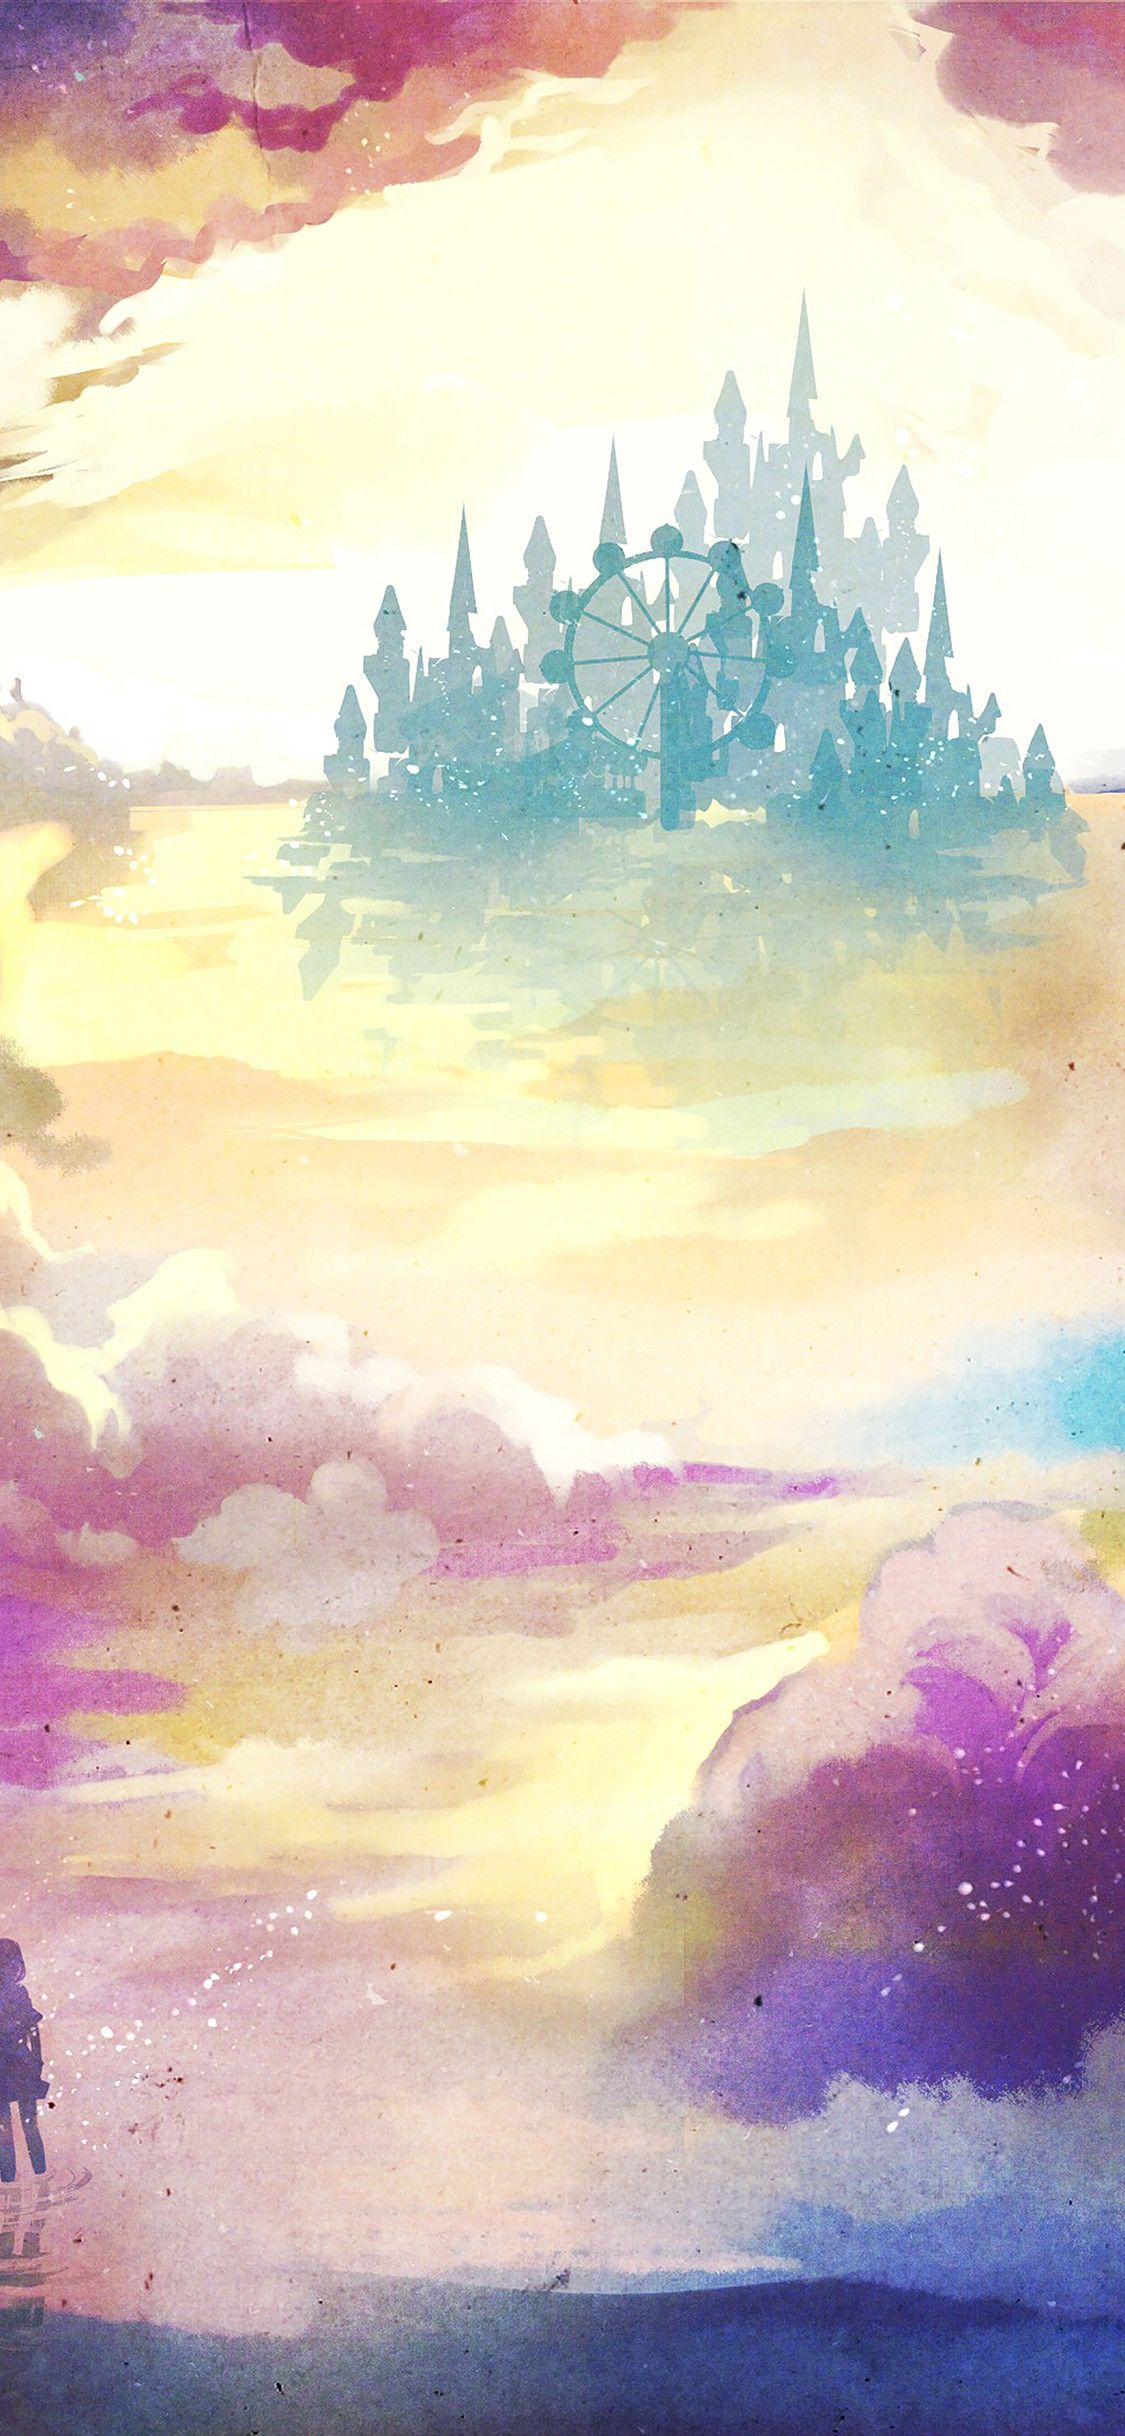 Watercolor Iphone Wallpapers On Wallpaperplay Art Wallpaper